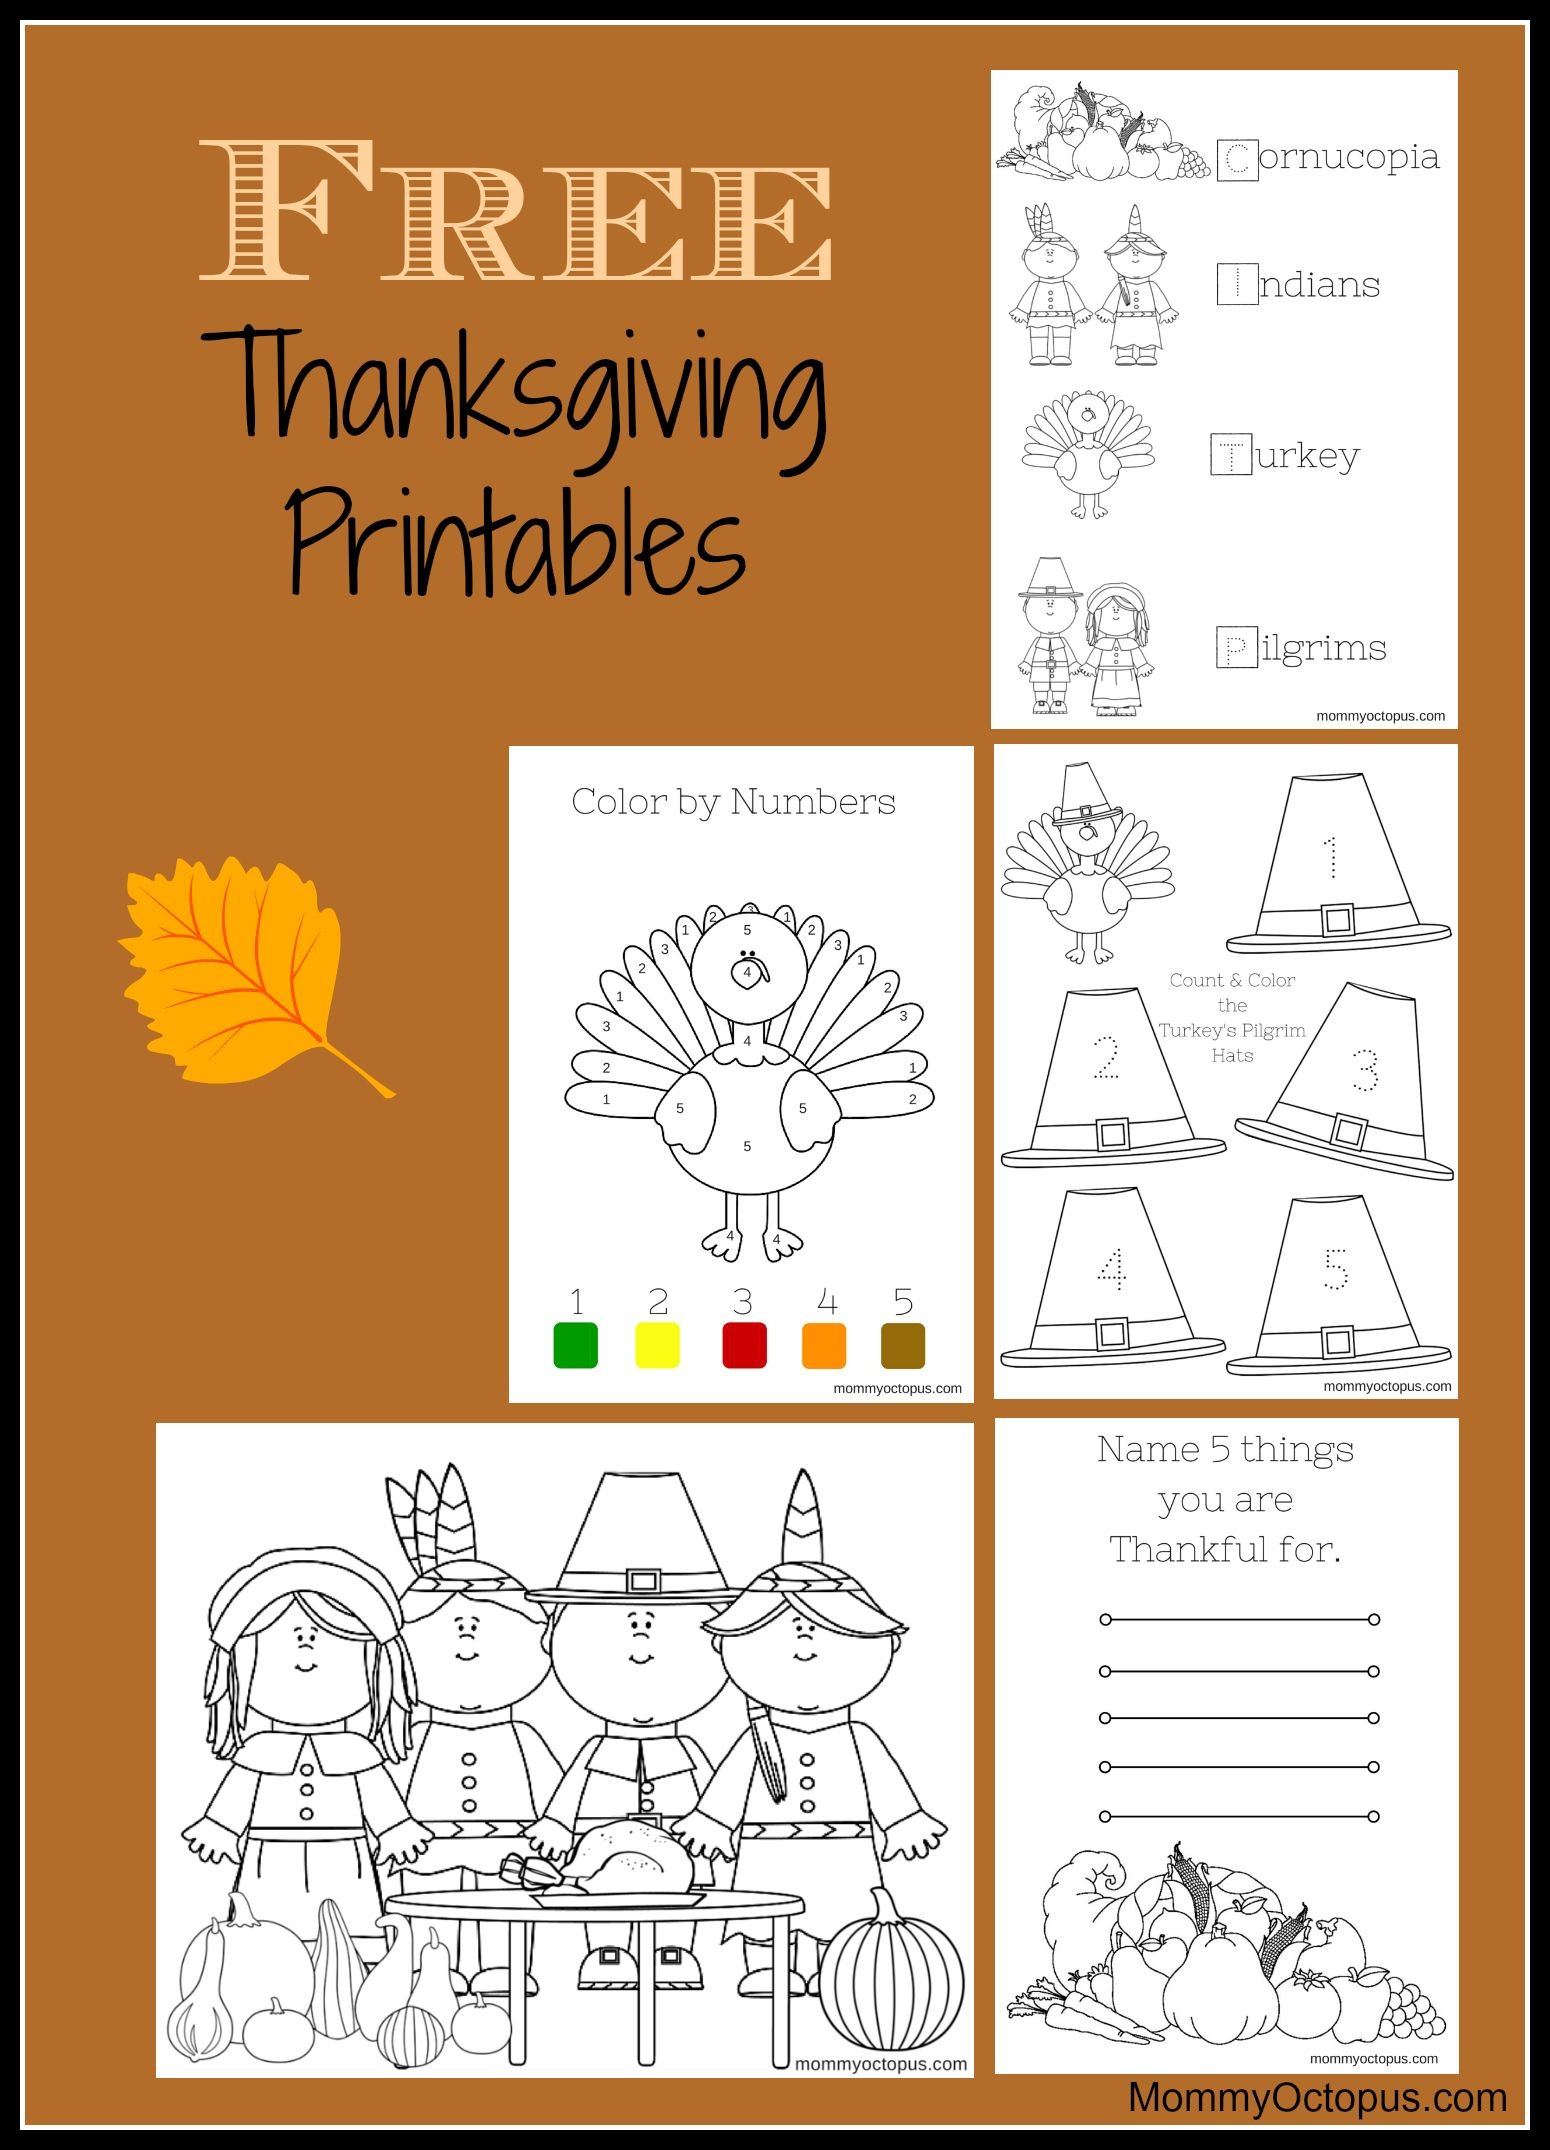 Free Thanksgiving Printable Activity Sheets! | Thanksgiving & Fall - Free Printable Thanksgiving Activities